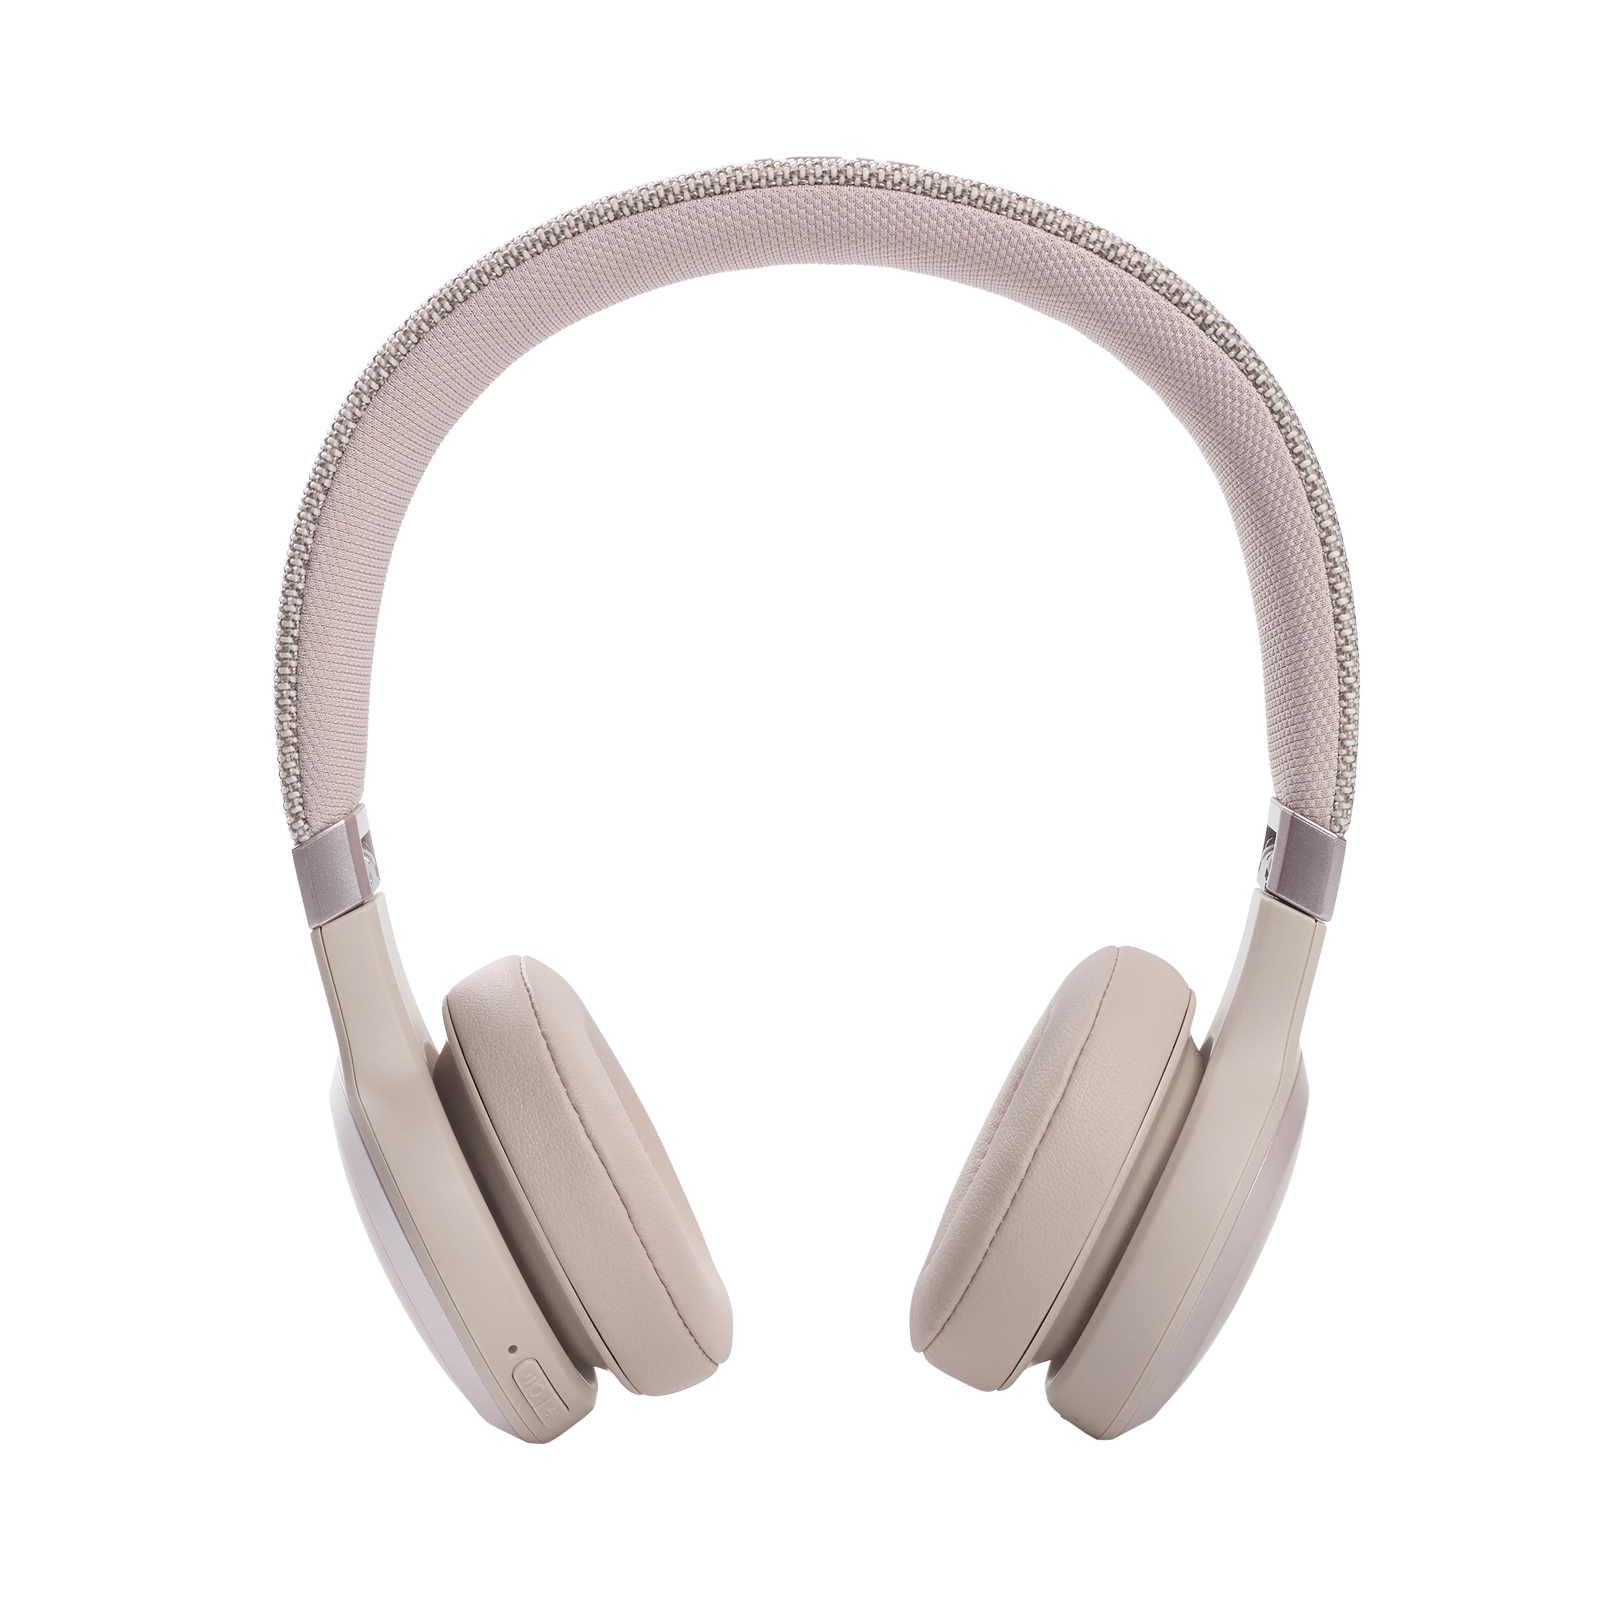 JBL Live 460NC - Rose - WIRELESS ON-EAR NC HEADPHONES - Front